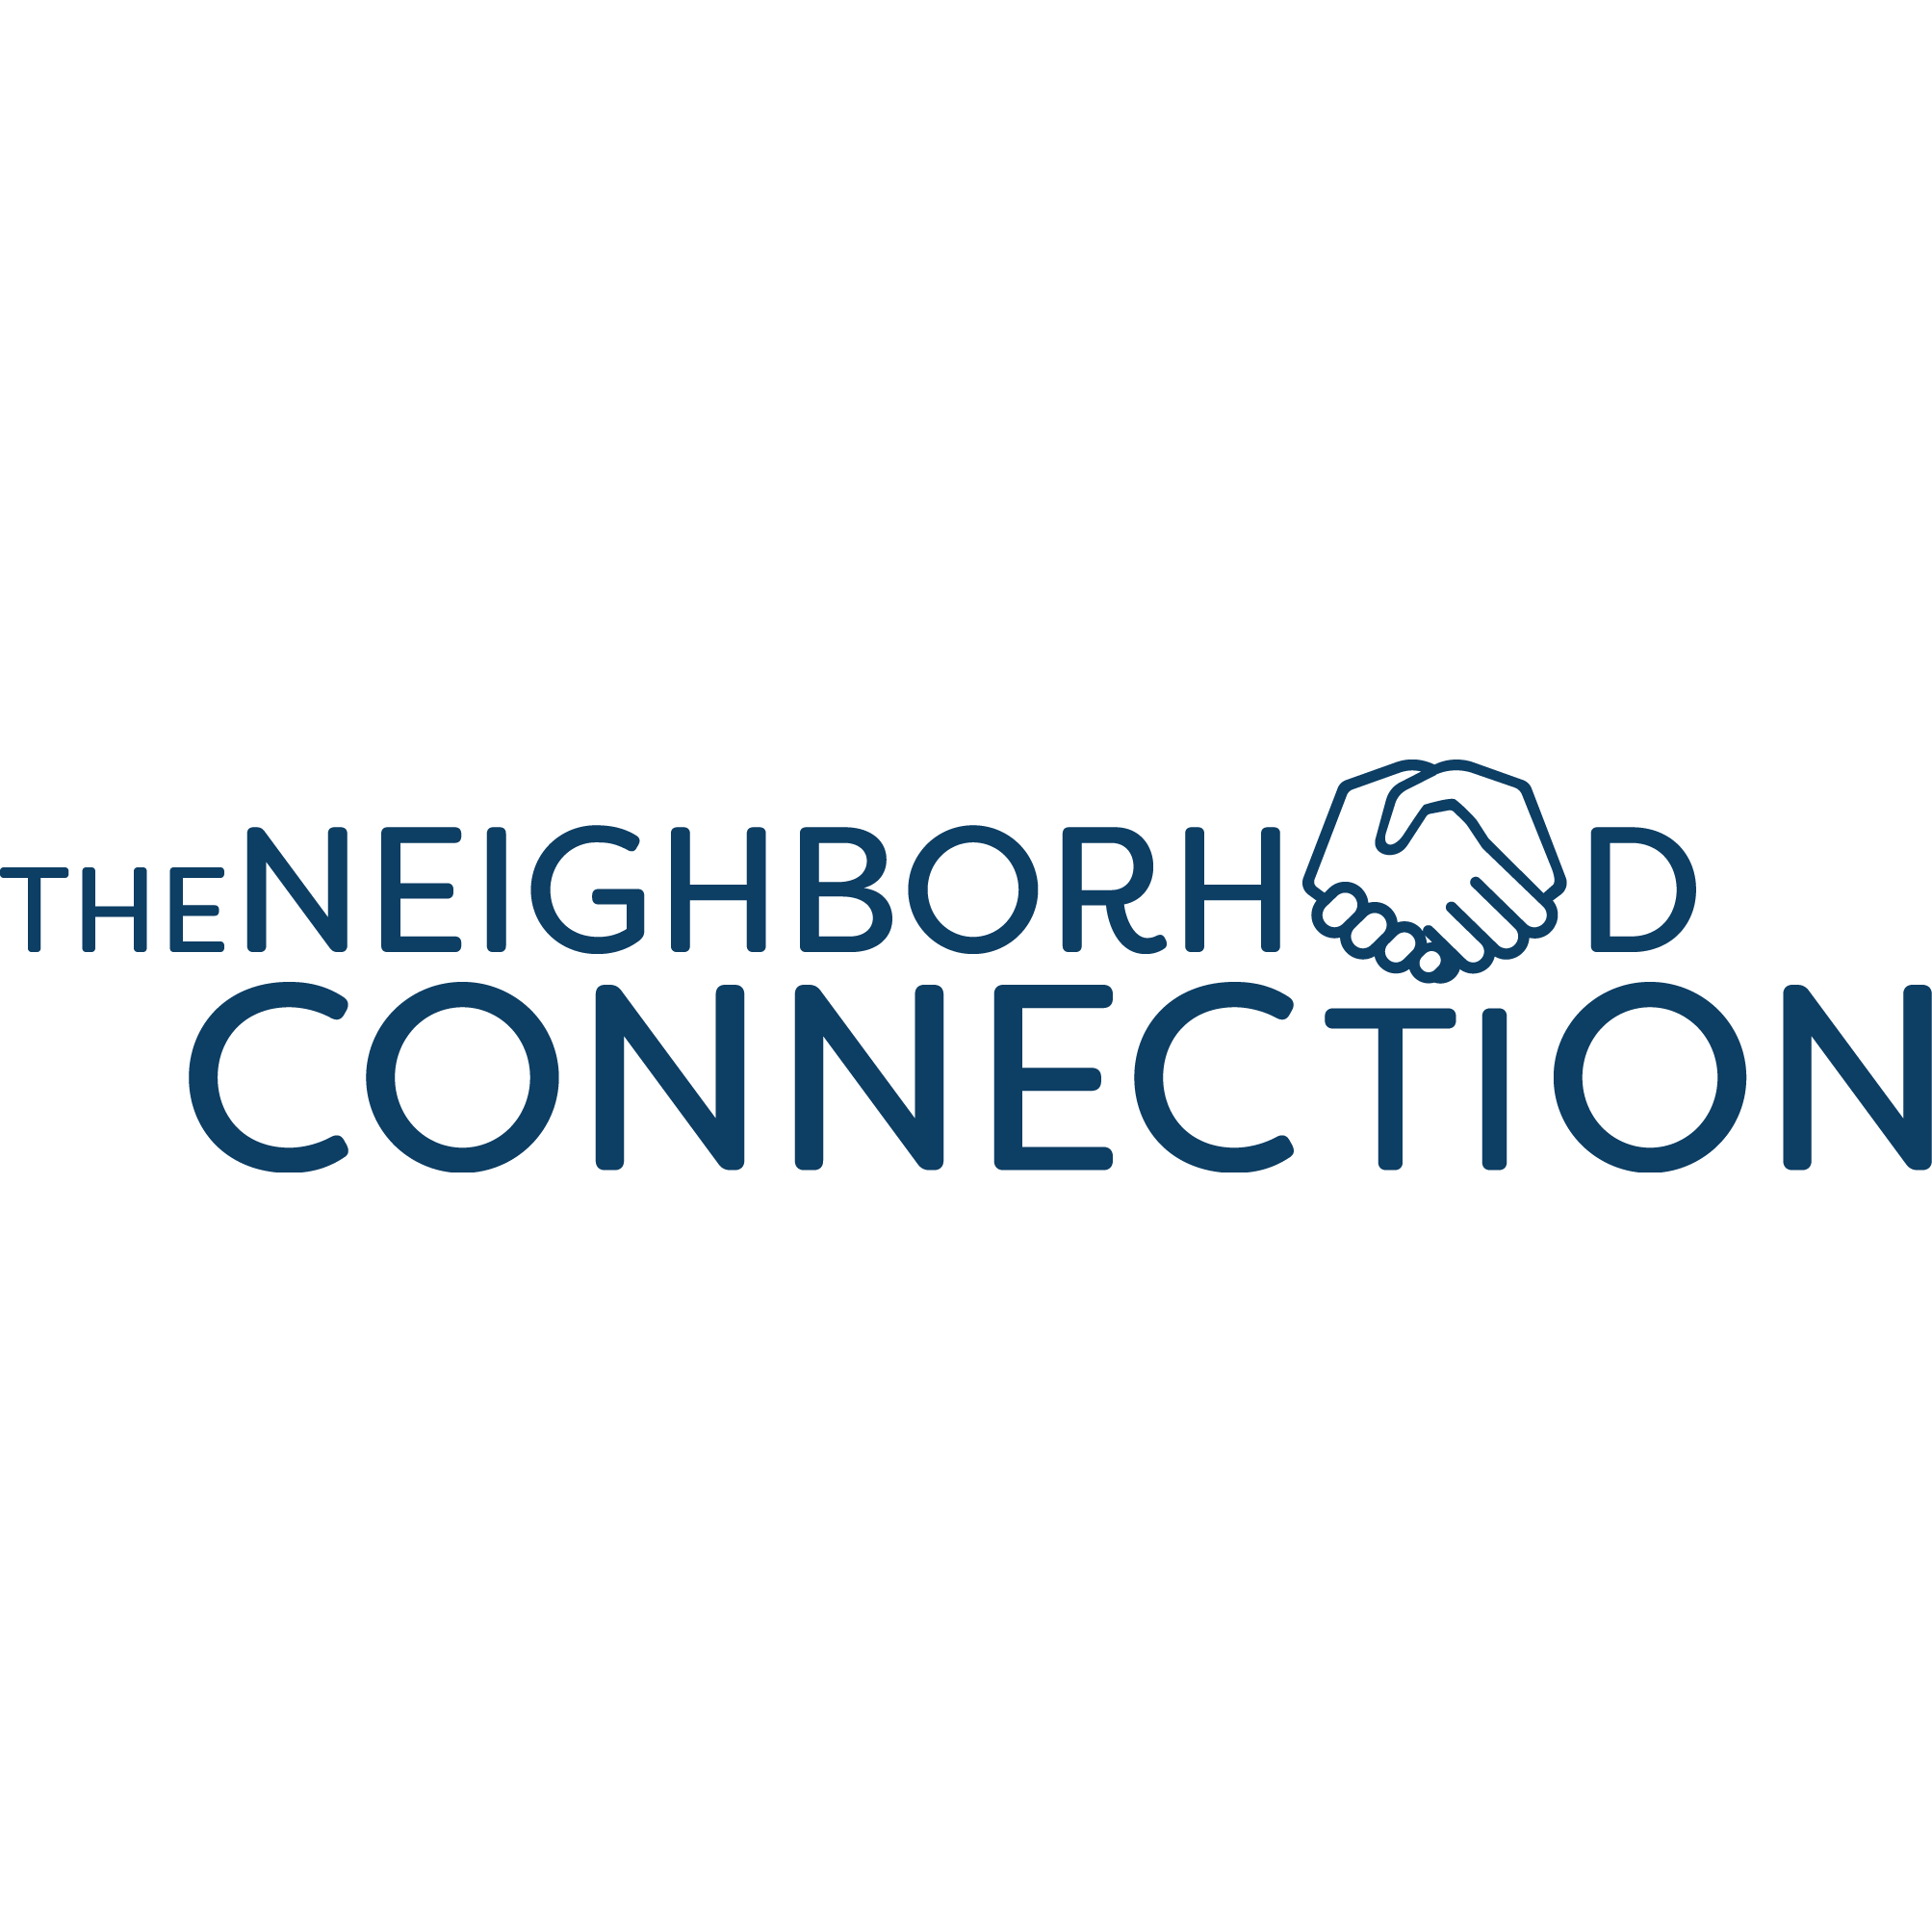 The Neighborhood Connection - San Diego, CA - Real Estate Agents